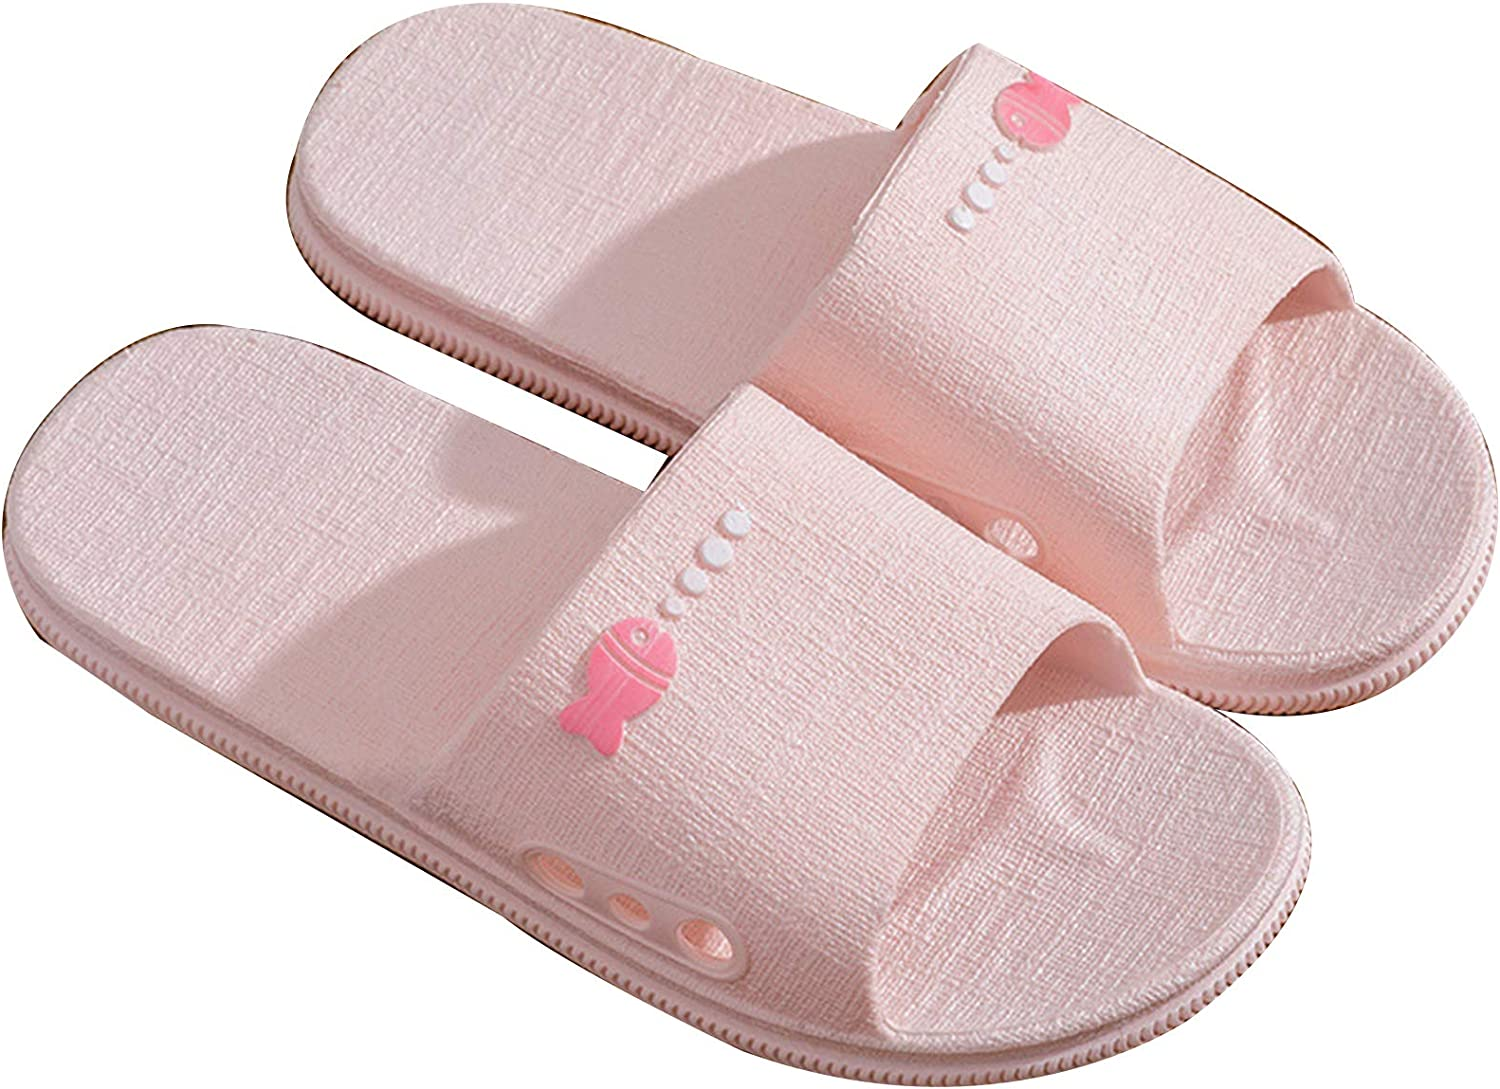 Slippers Max 44% OFF ladies indoor and outdoor slippers bath shower Great interest swimmi